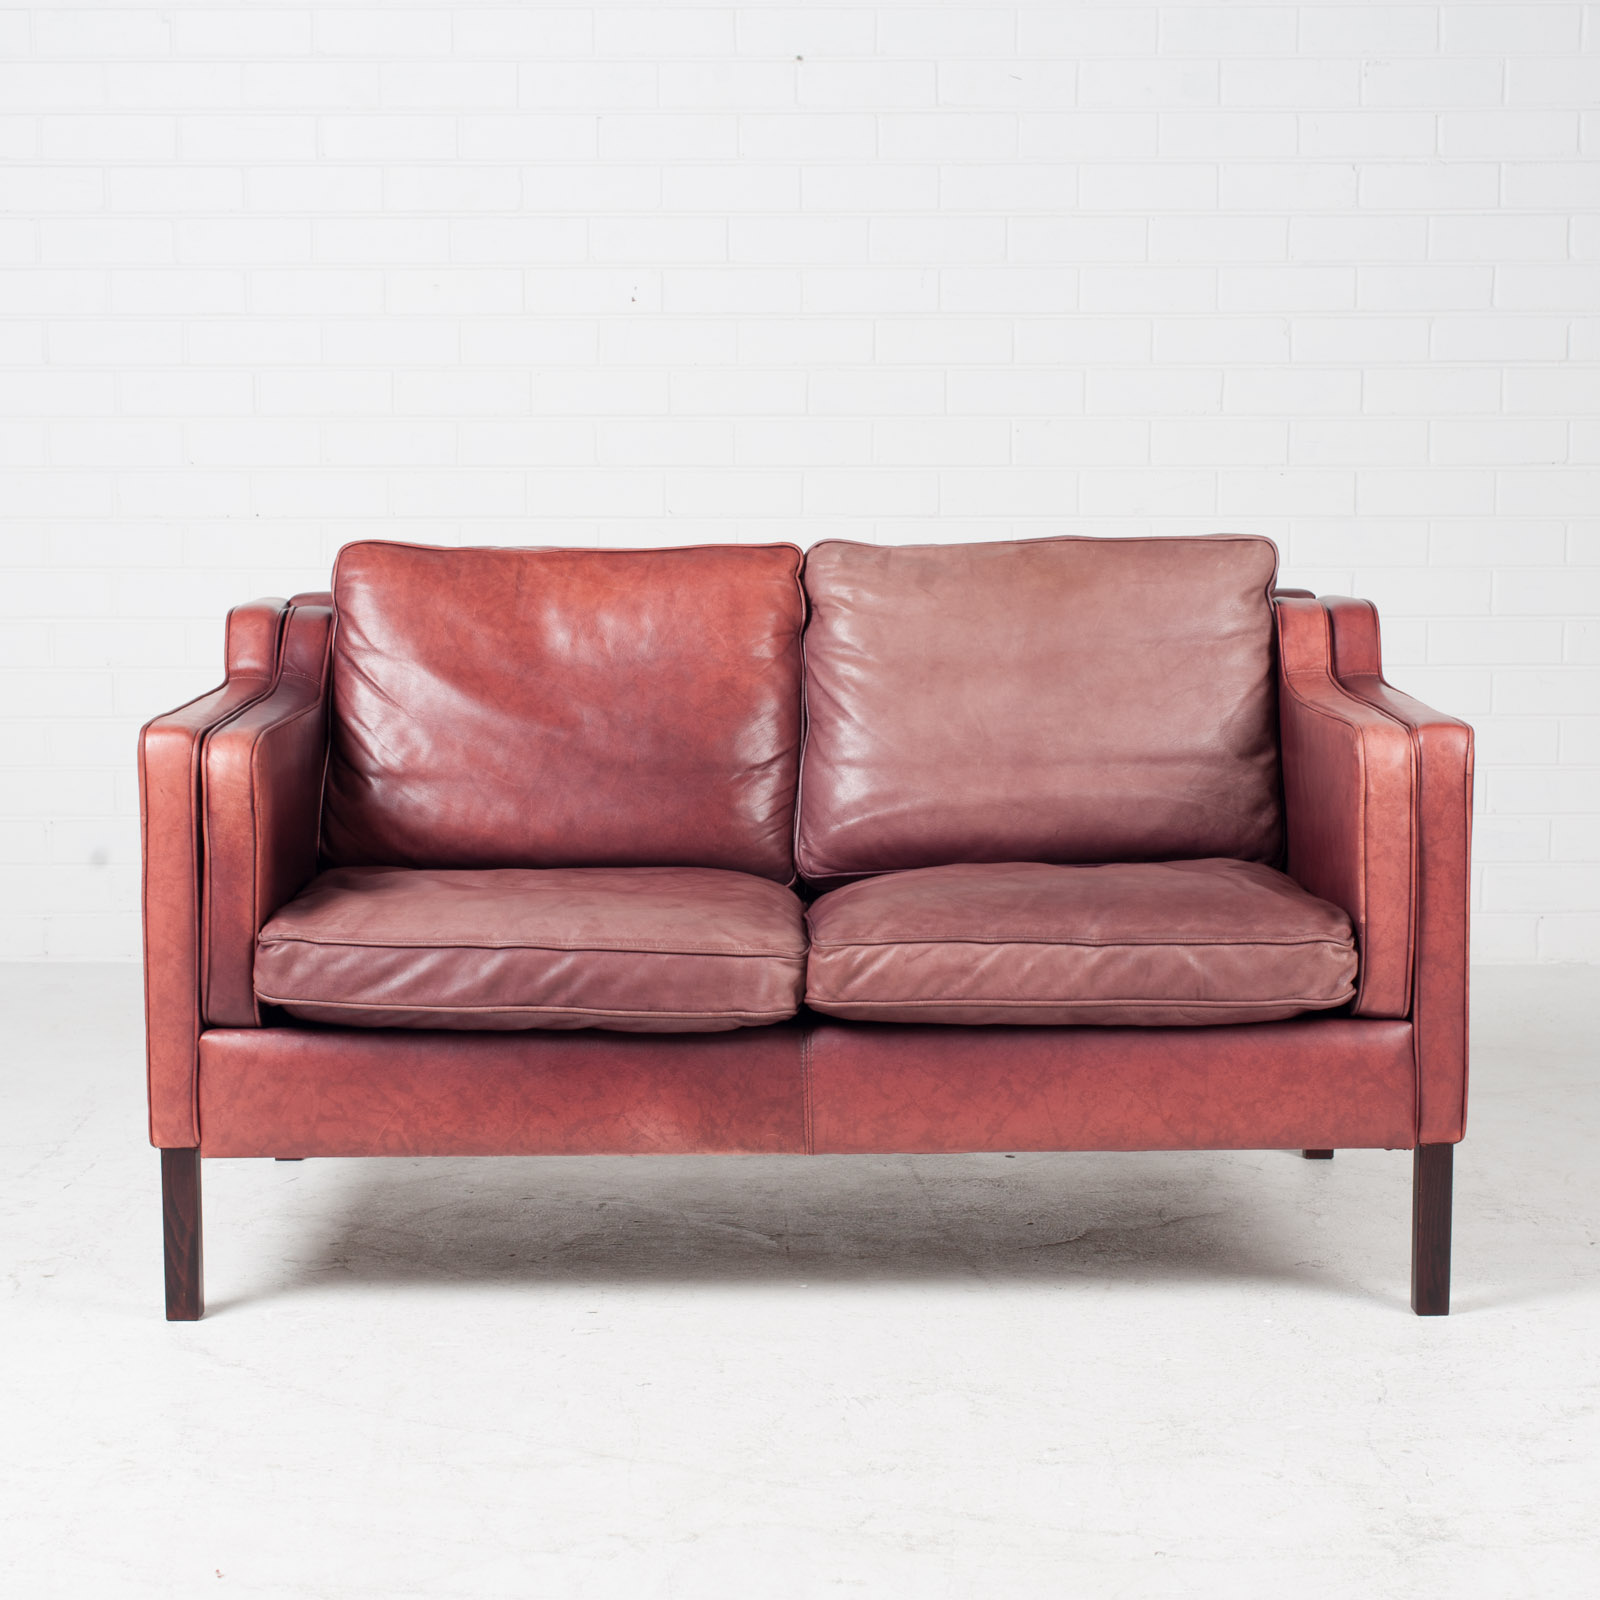 2 Seat Sofa By Stouby In Port Leather 1960s Denmark